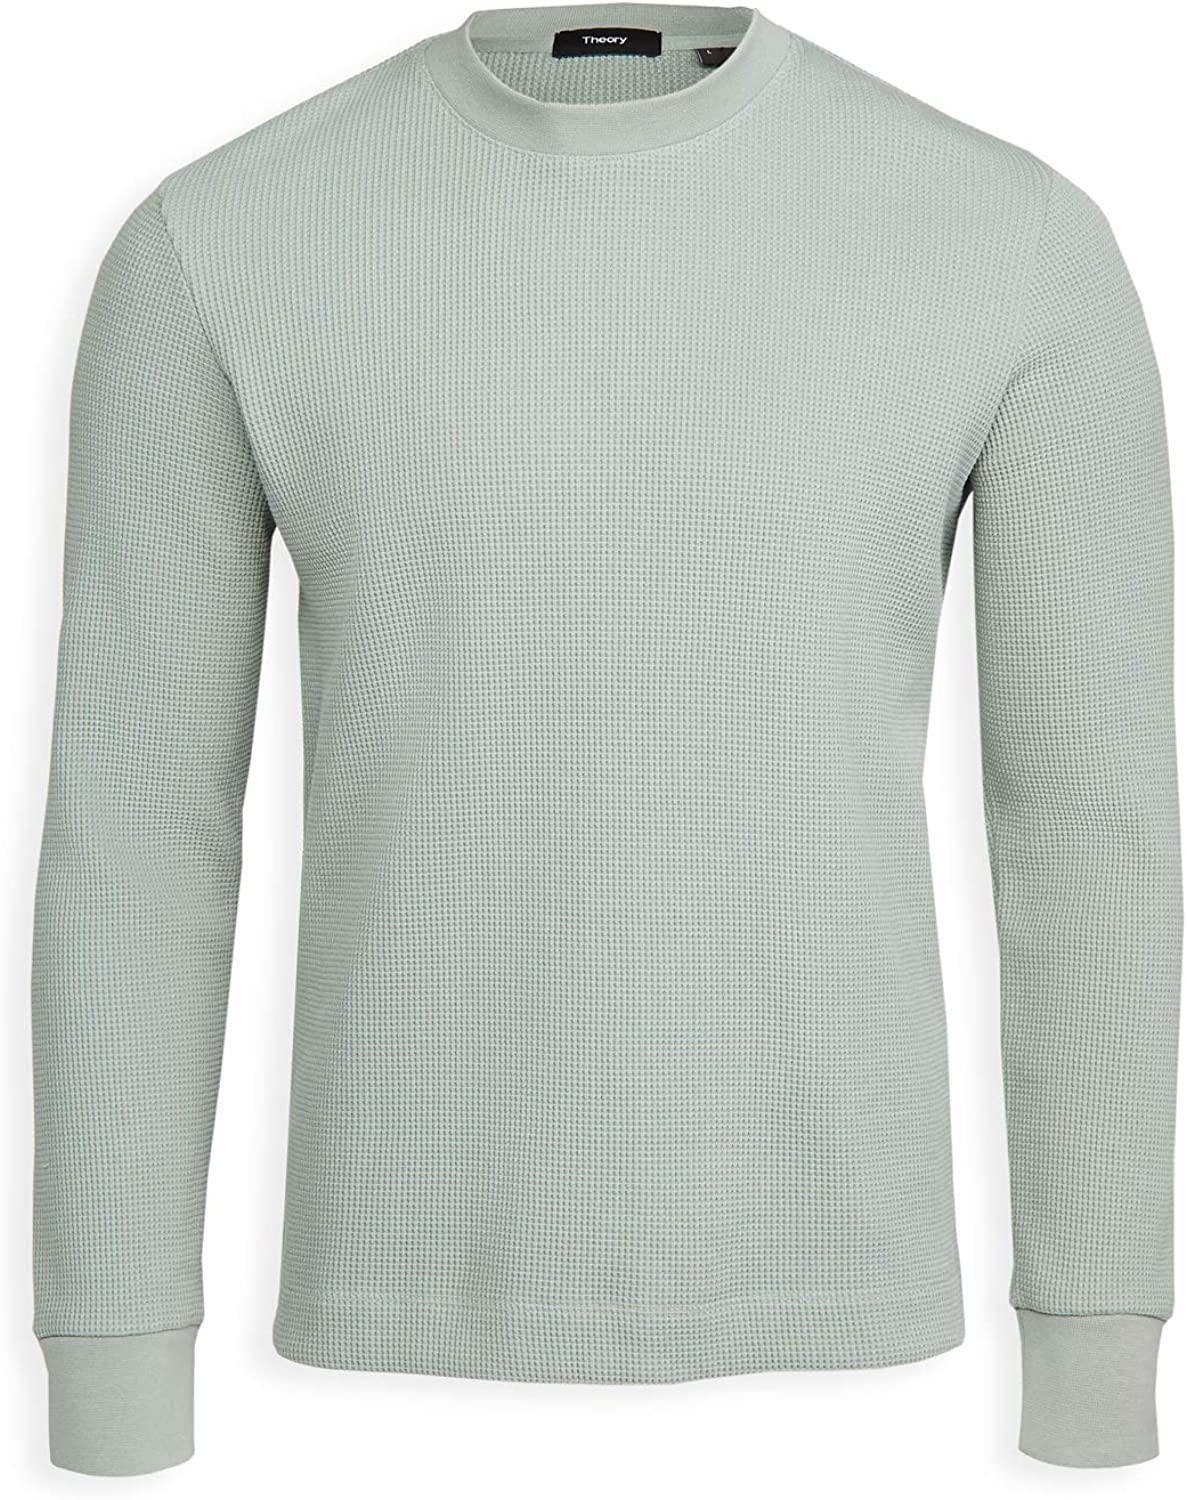 Theory Men's 情熱セール Mattis 1着でも送料無料 Pullover Waffle Knit Cotton in